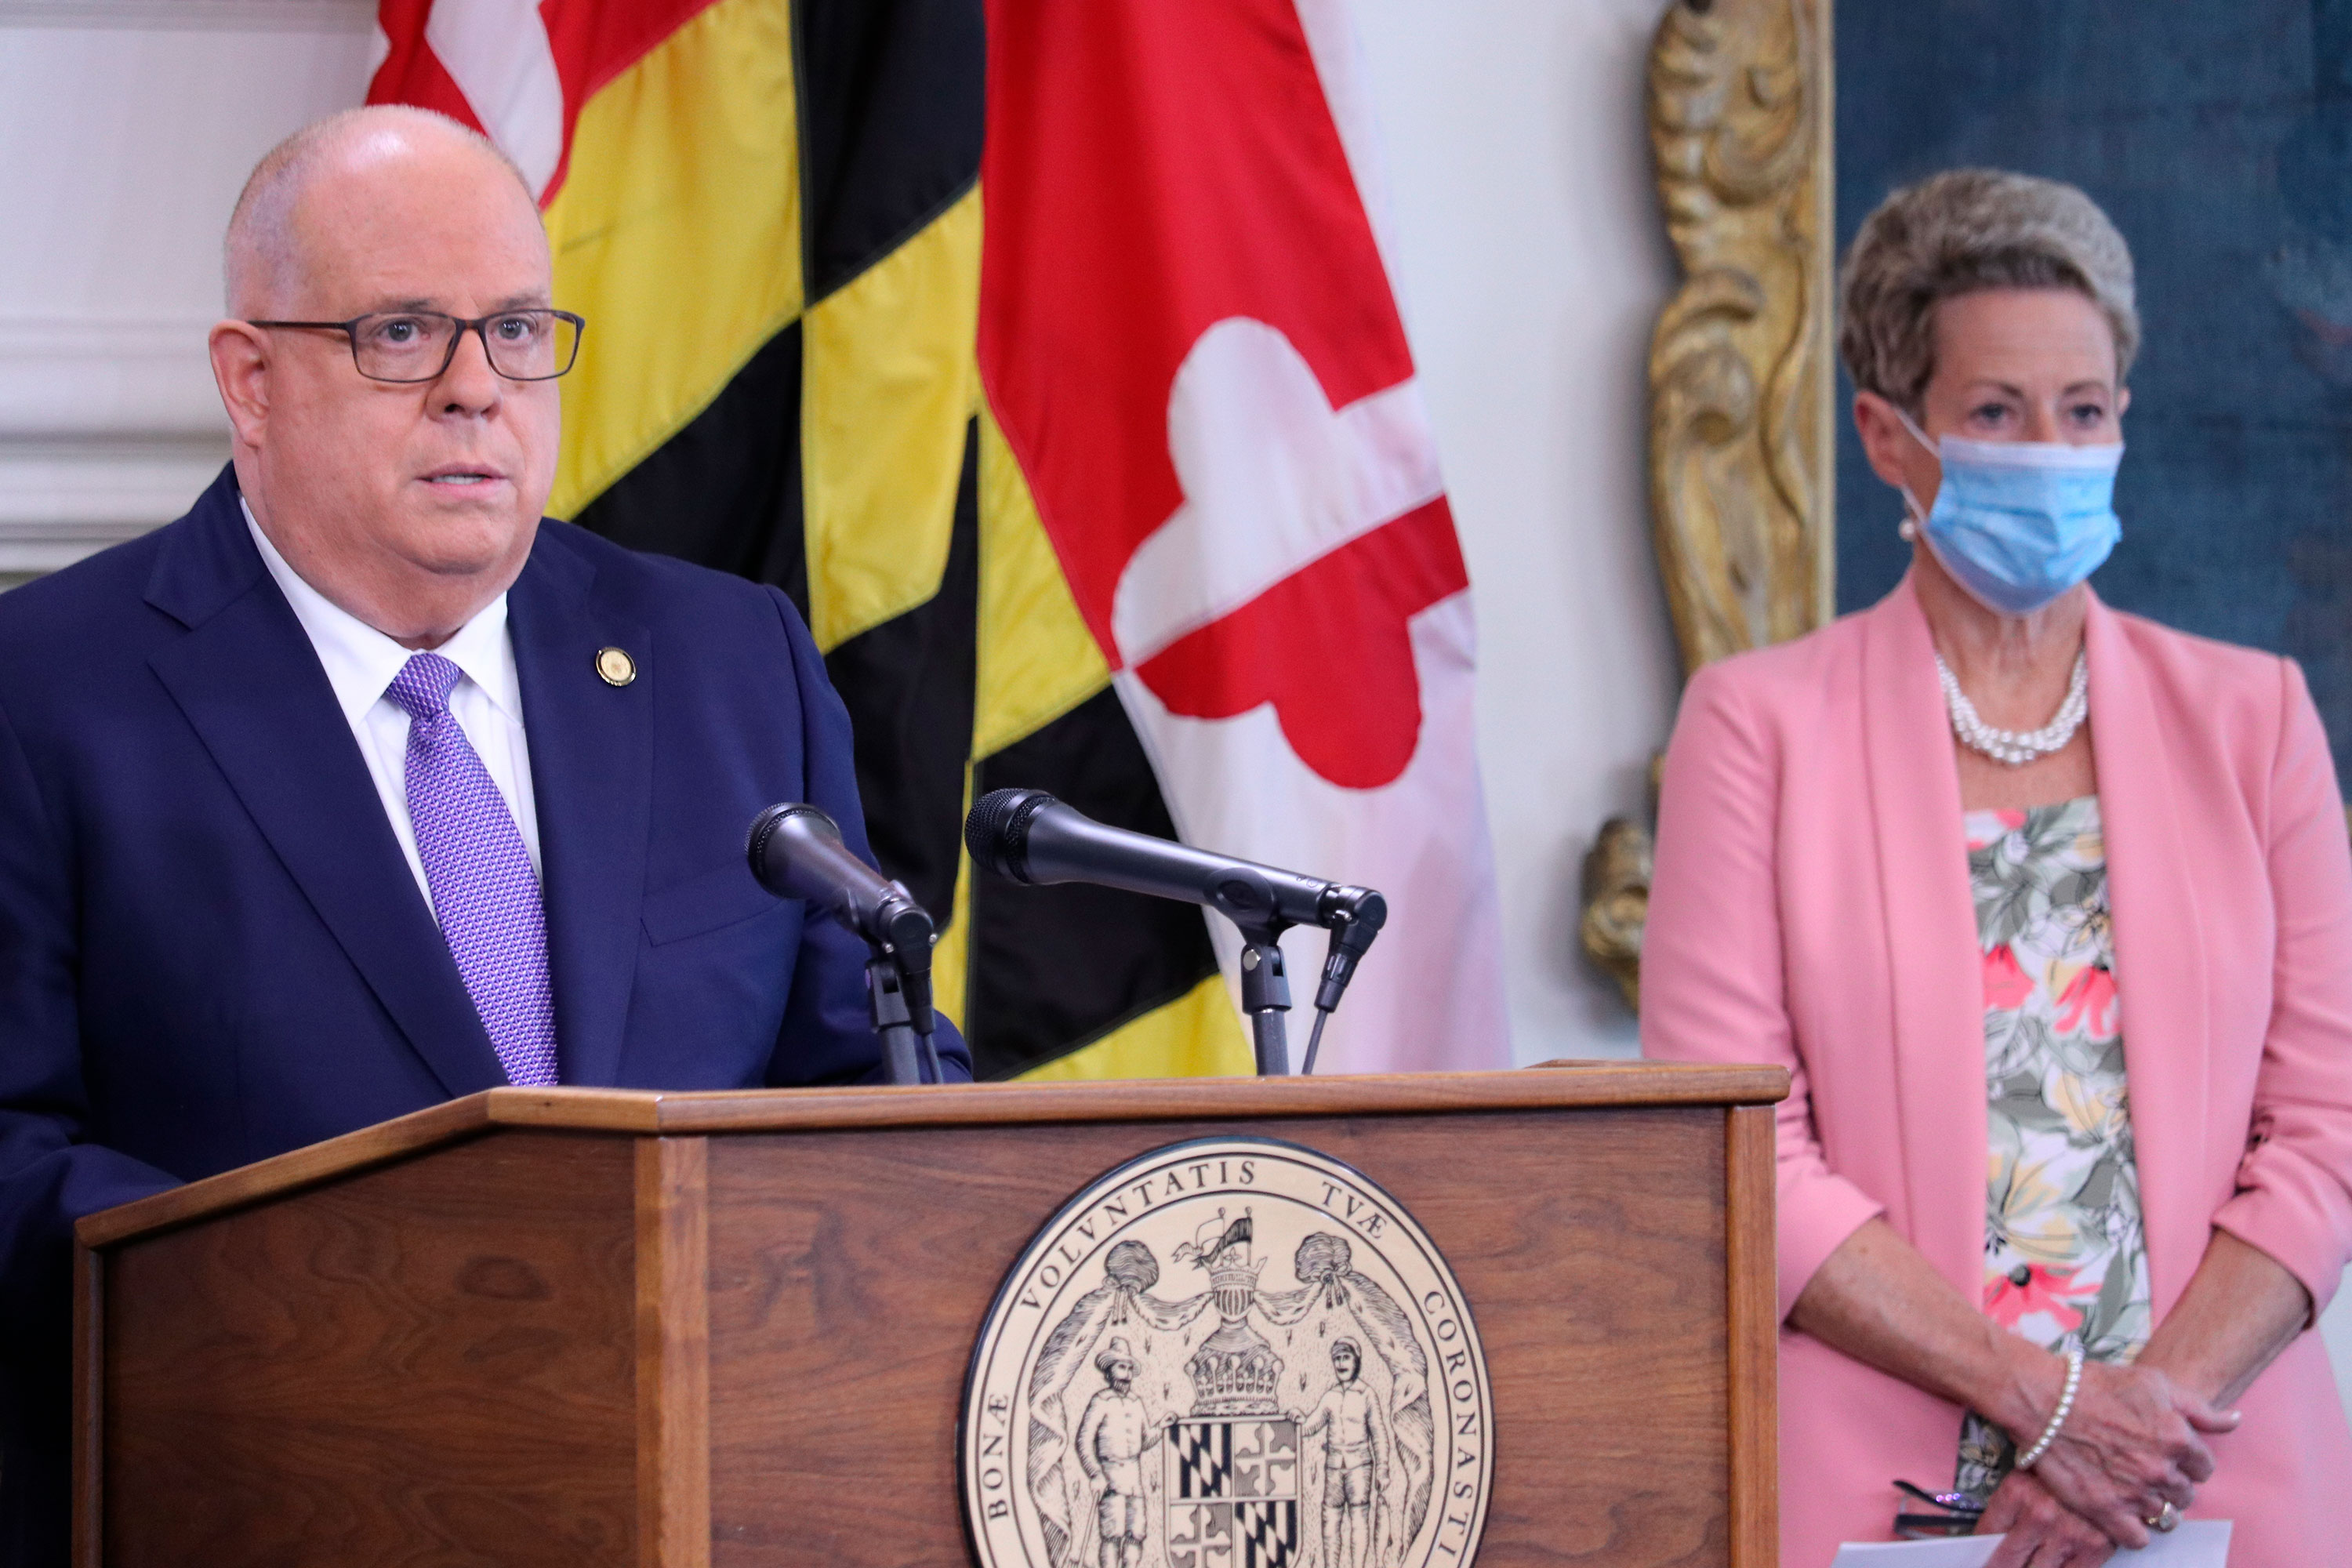 Maryland Gov. Larry Hogan announces that all of the state's school systems meet safety standards to reopen for some in-person instruction during a news conference on August 27 in Annapolis, Maryland.